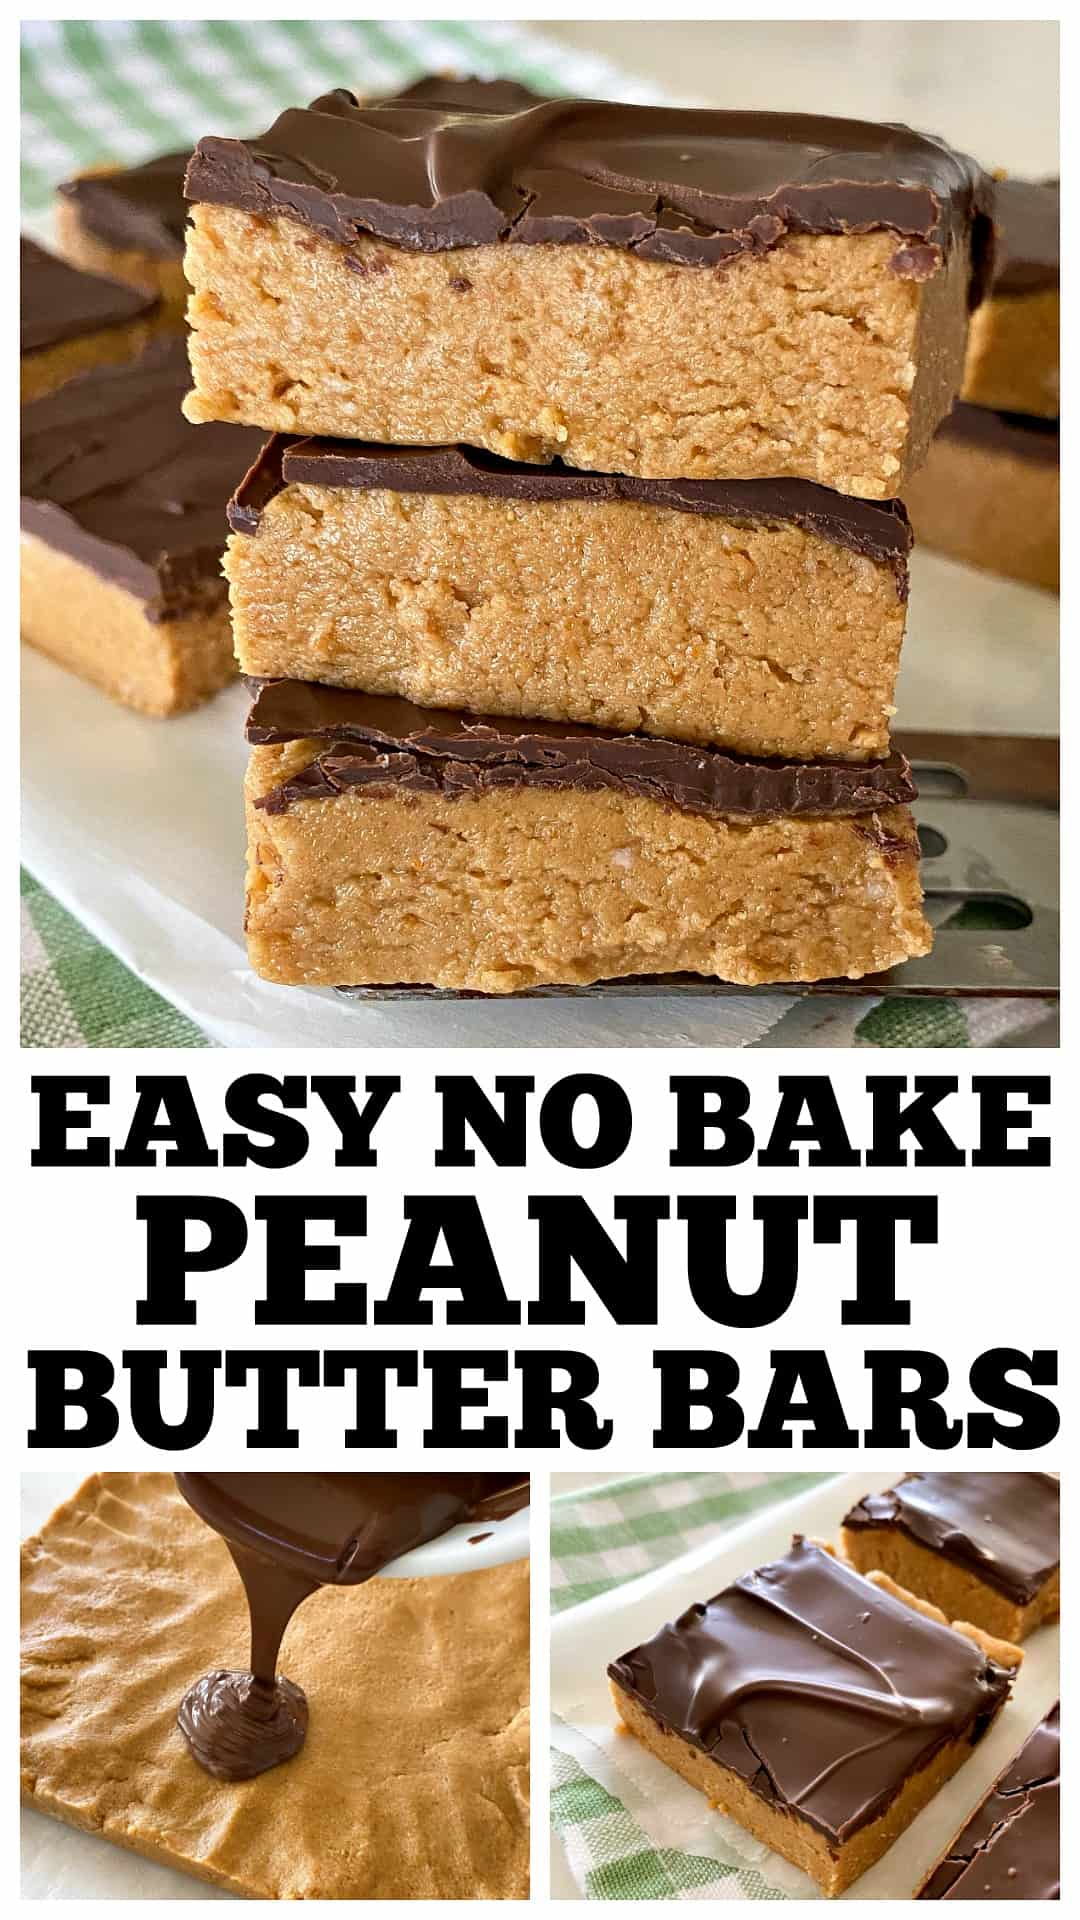 no bake peanut butter bars collage